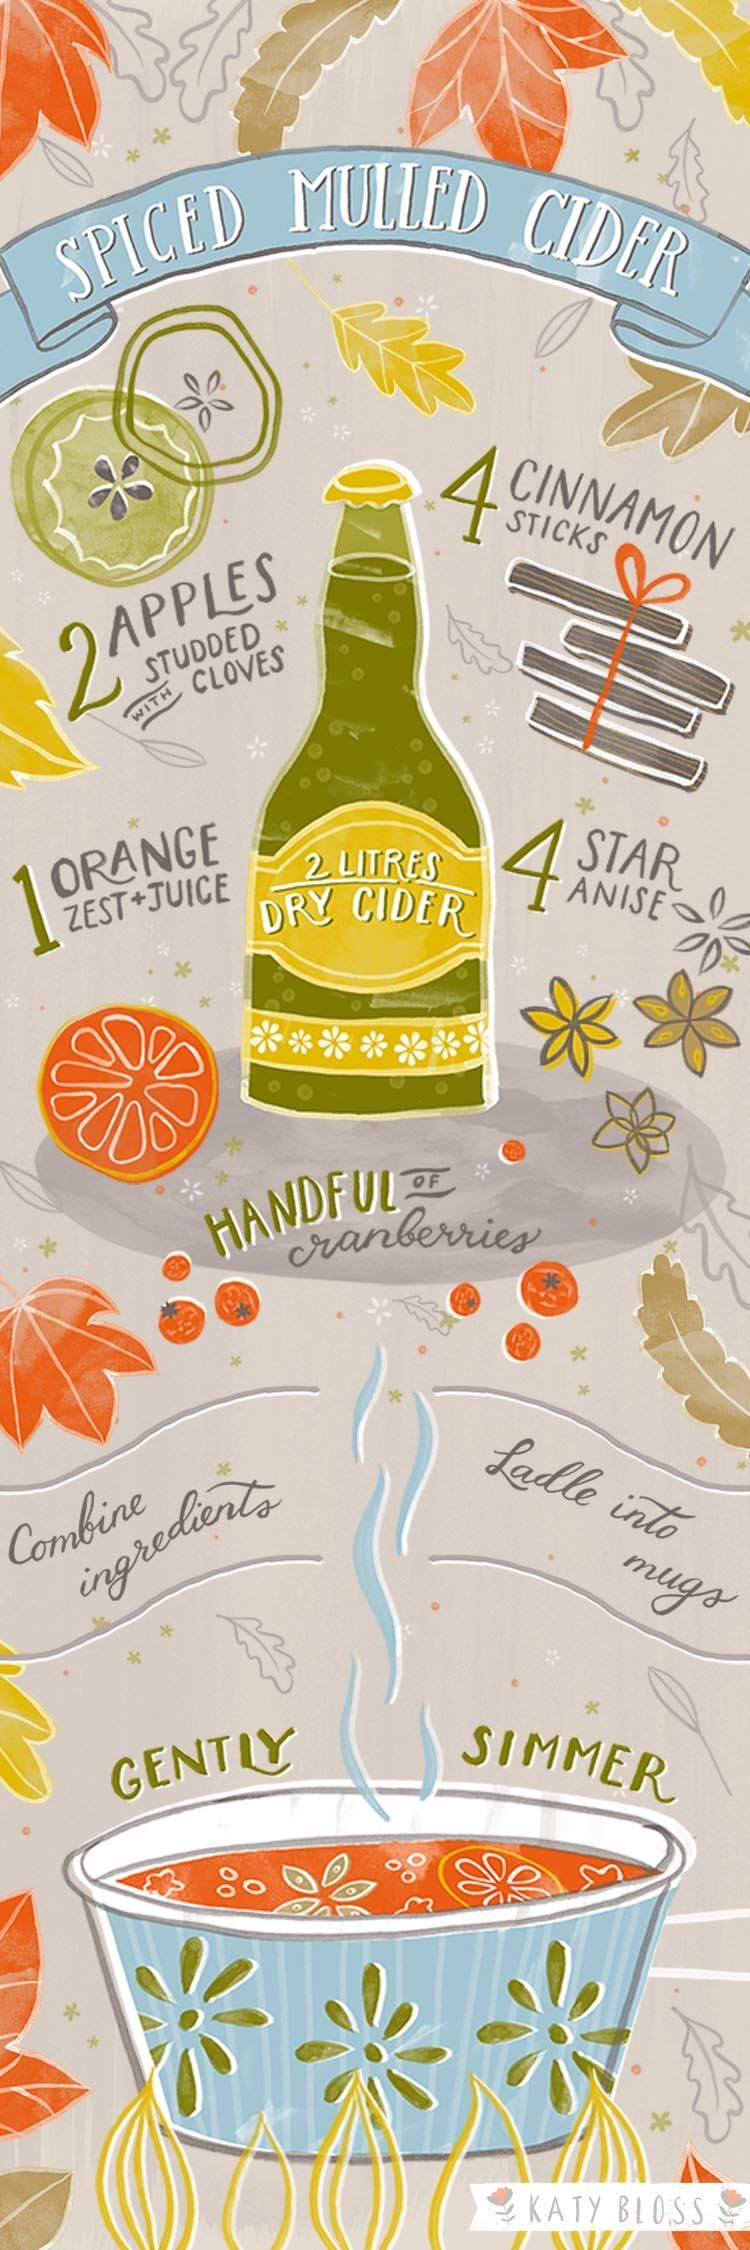 Spiced Mulled Cider Illustrated Recipe - image 3 - student project